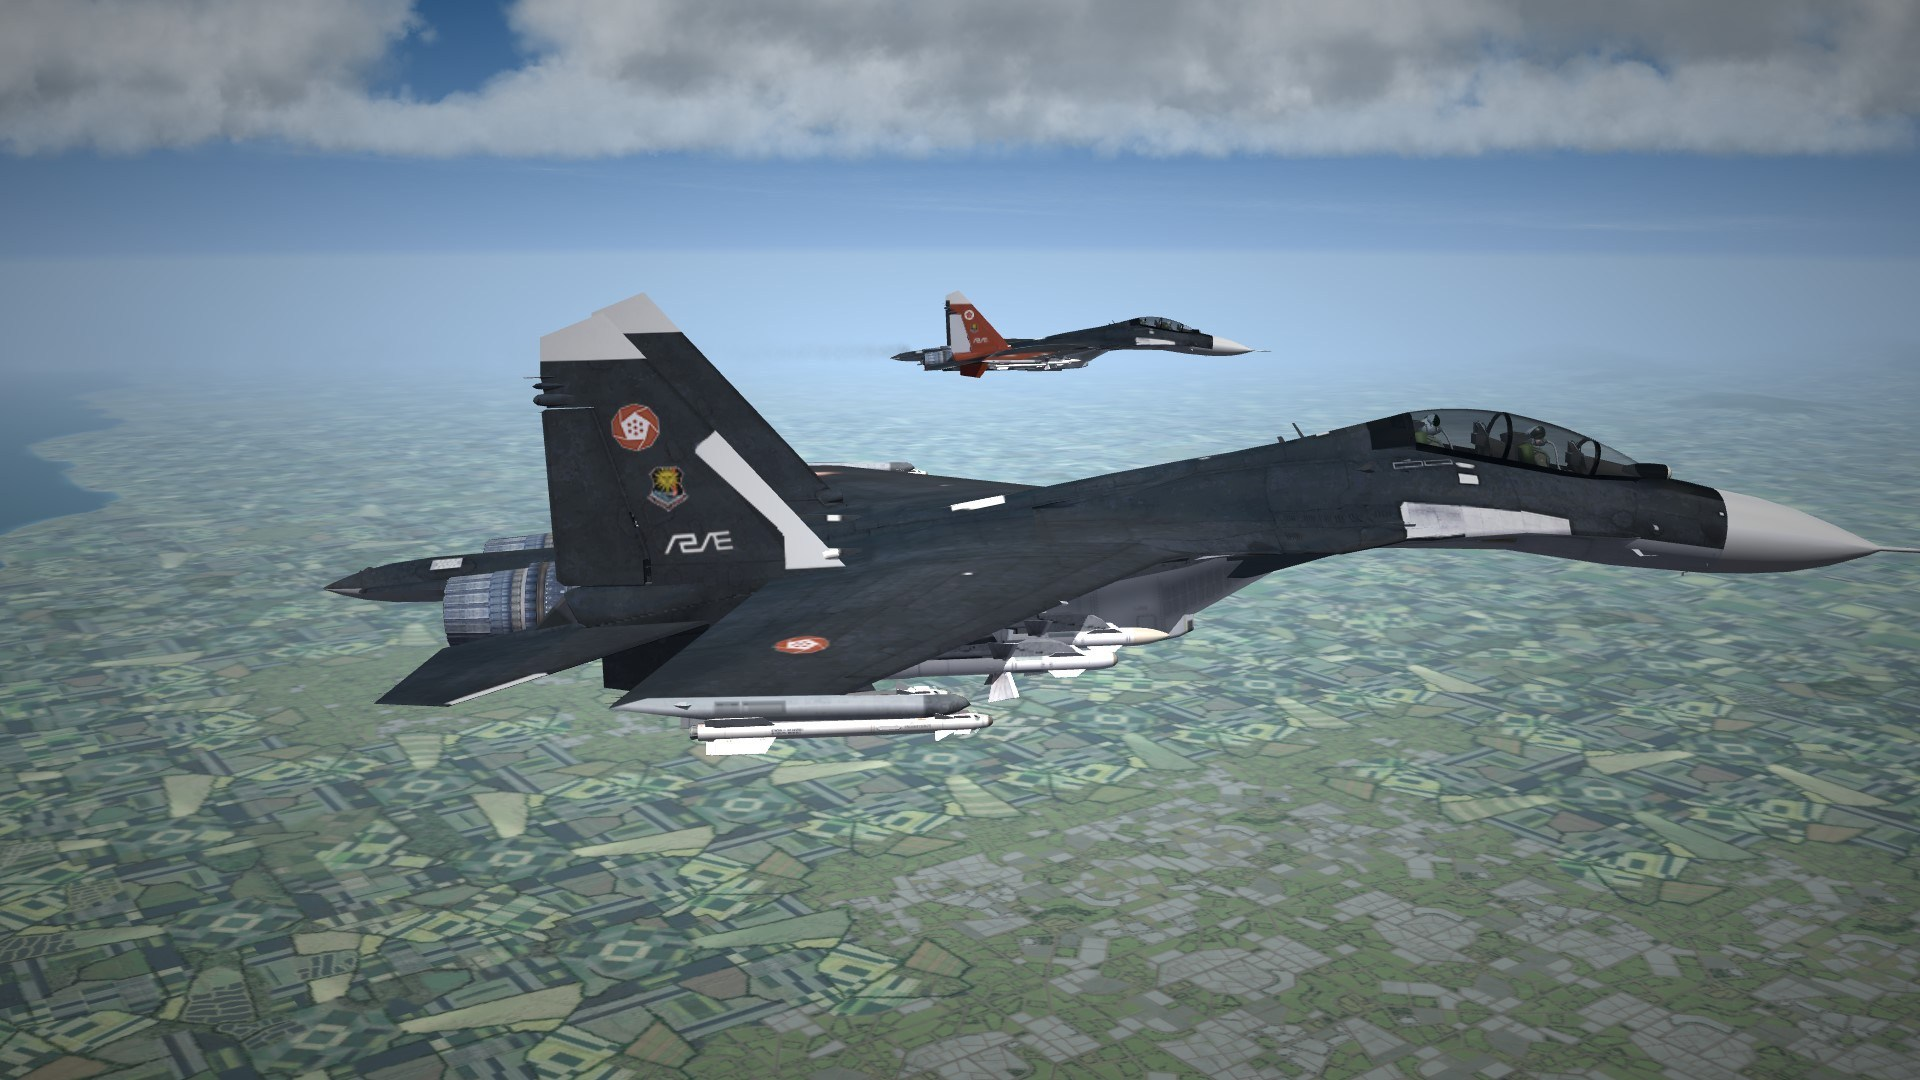 ACE7 SOL Squadron Skin for Su-30SM by frtn(SOL1 inclued)